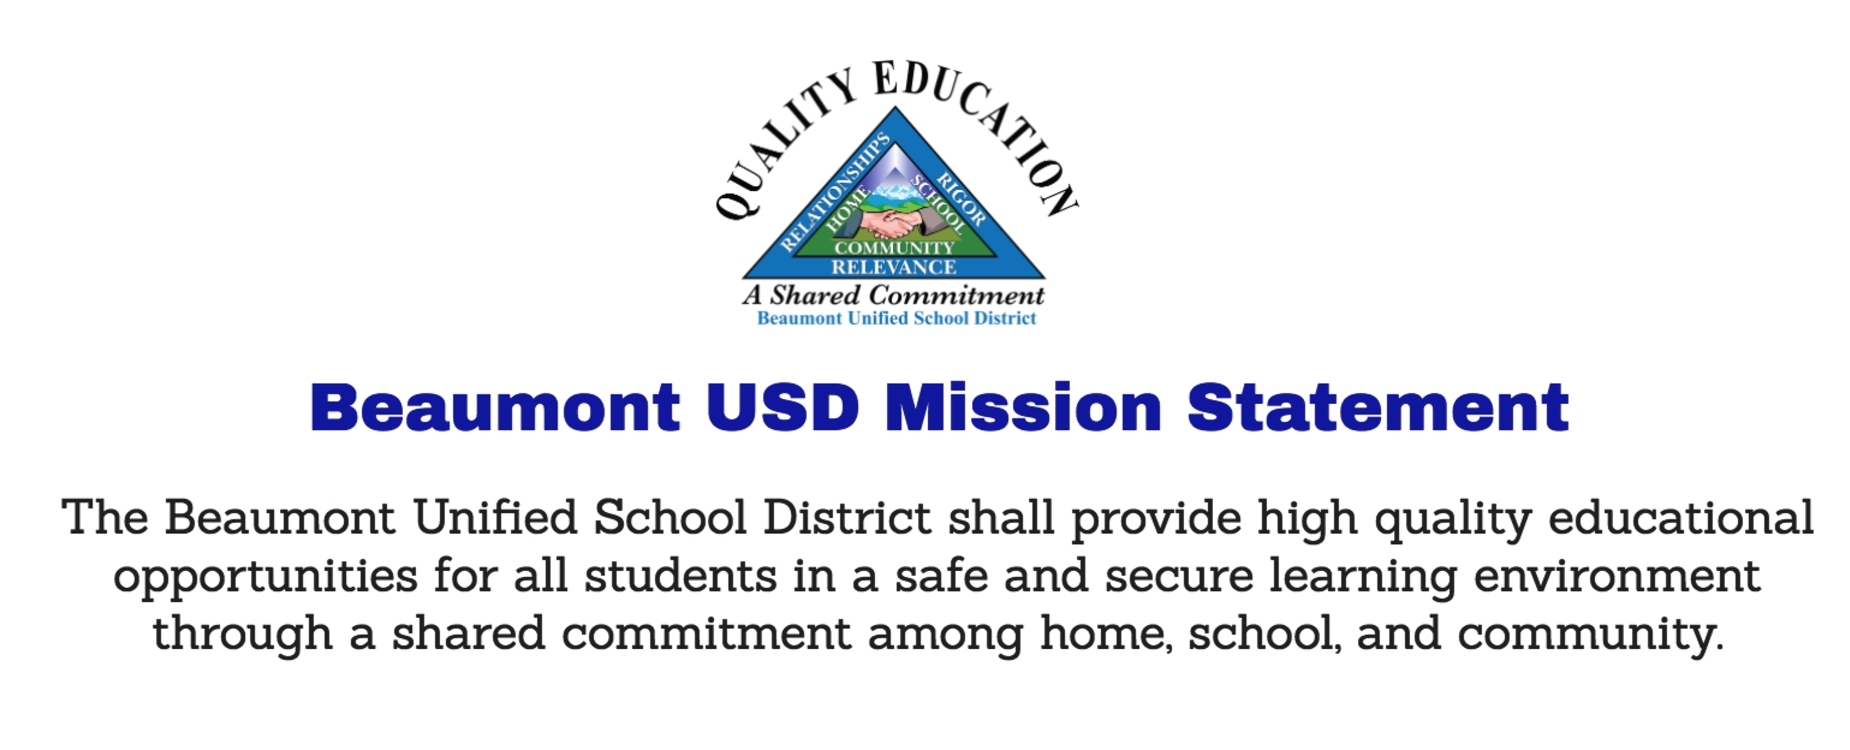 Beaumont USD Logo and Mission Statement